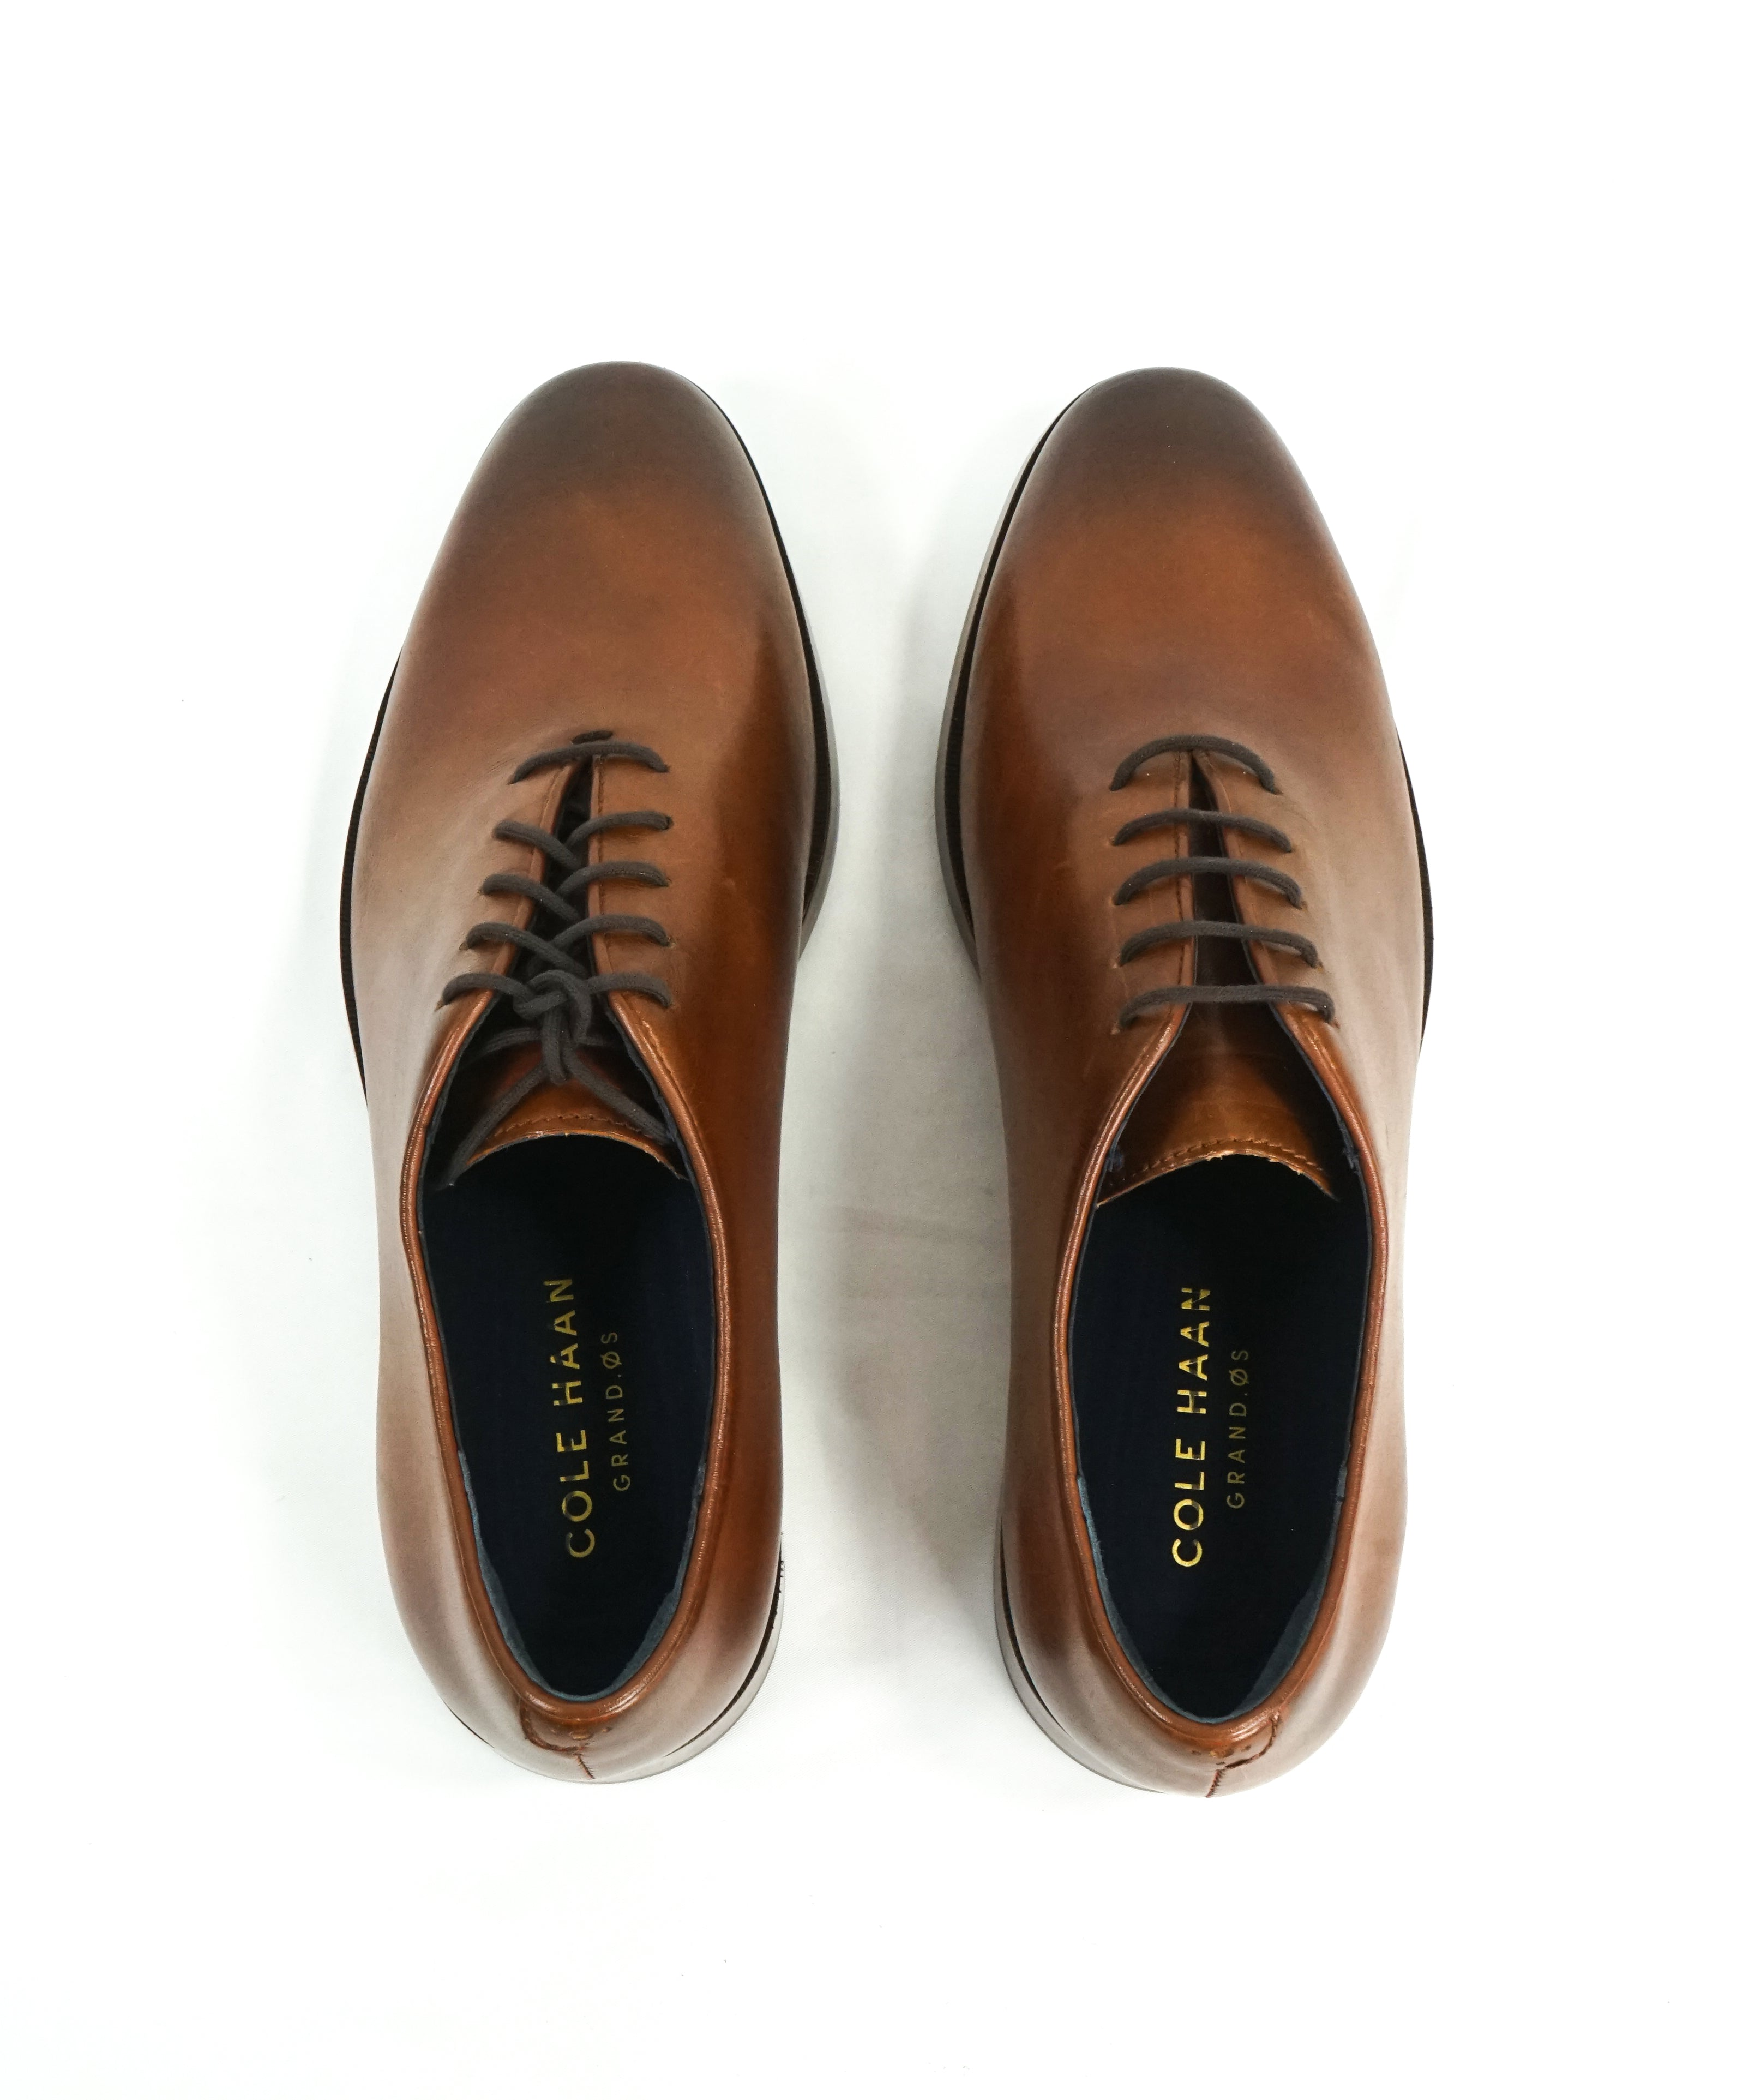 temperament shoes aesthetic appearance look good shoes sale COLE HAAN - Air Grand OS